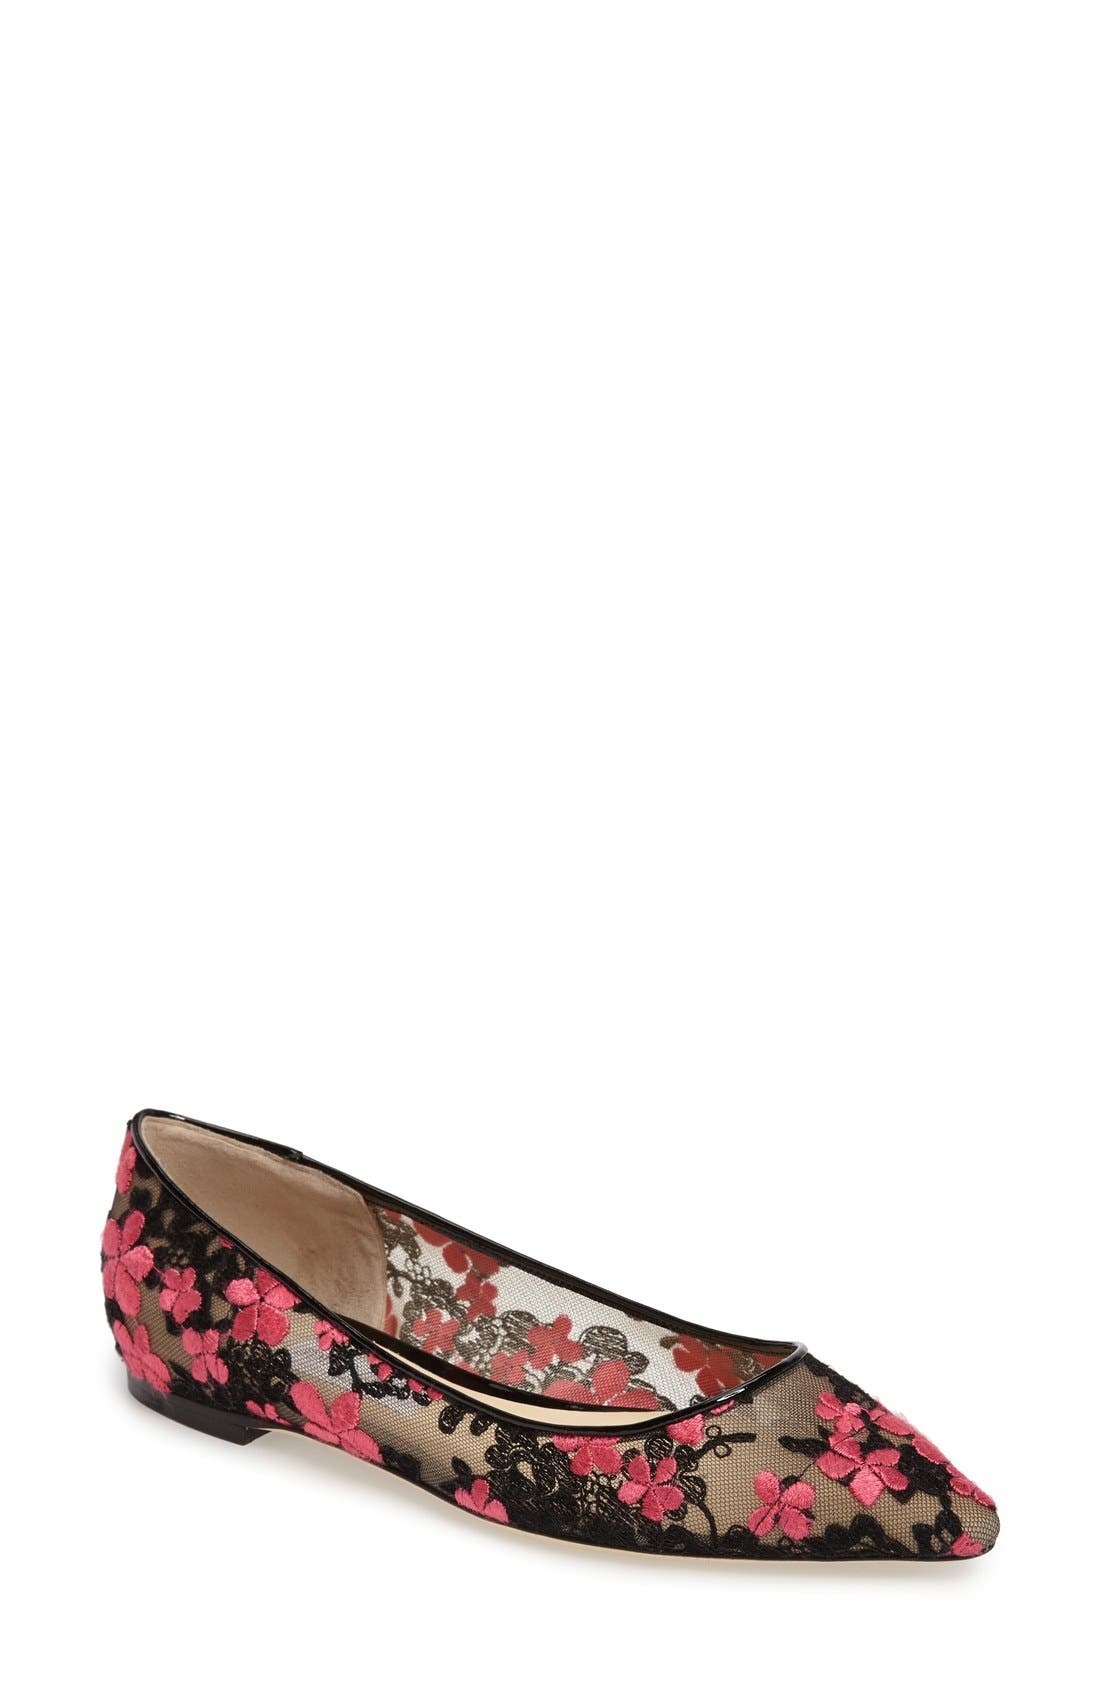 Main Image - Jimmy Choo Romy Embroidered Floral Flat (Women)